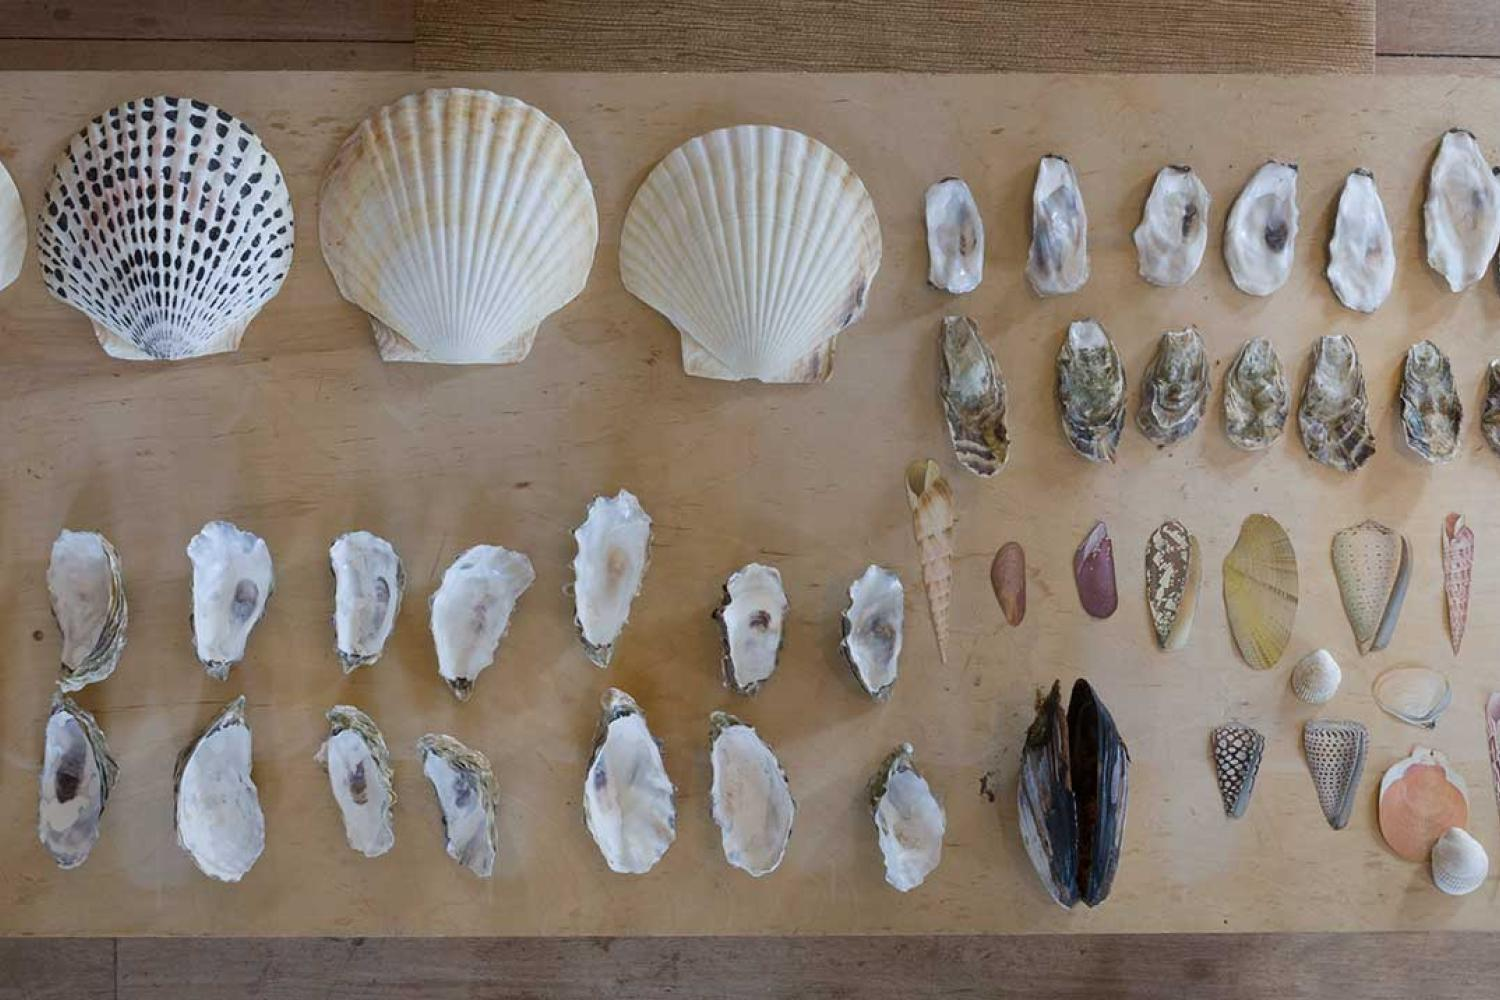 Groupings of like seashells in rows